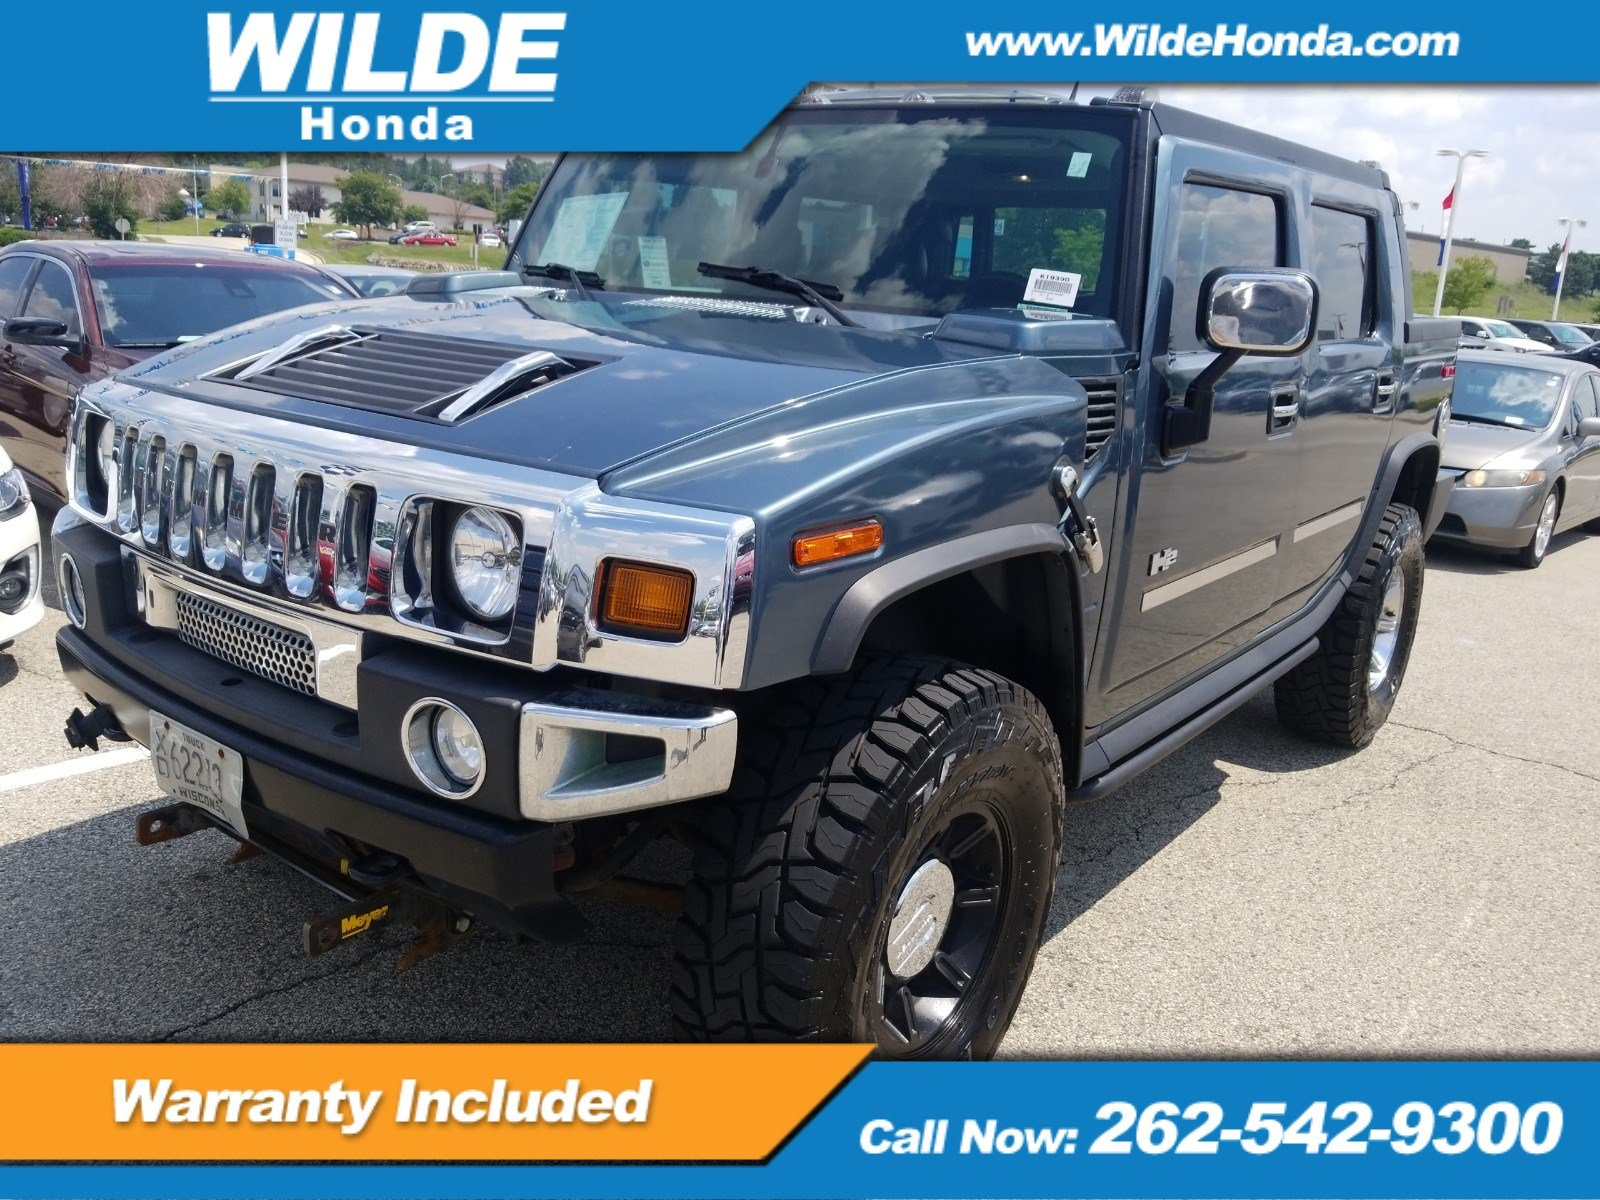 Pre-Owned 2005 HUMMER H2 SUT w/ Moonroof